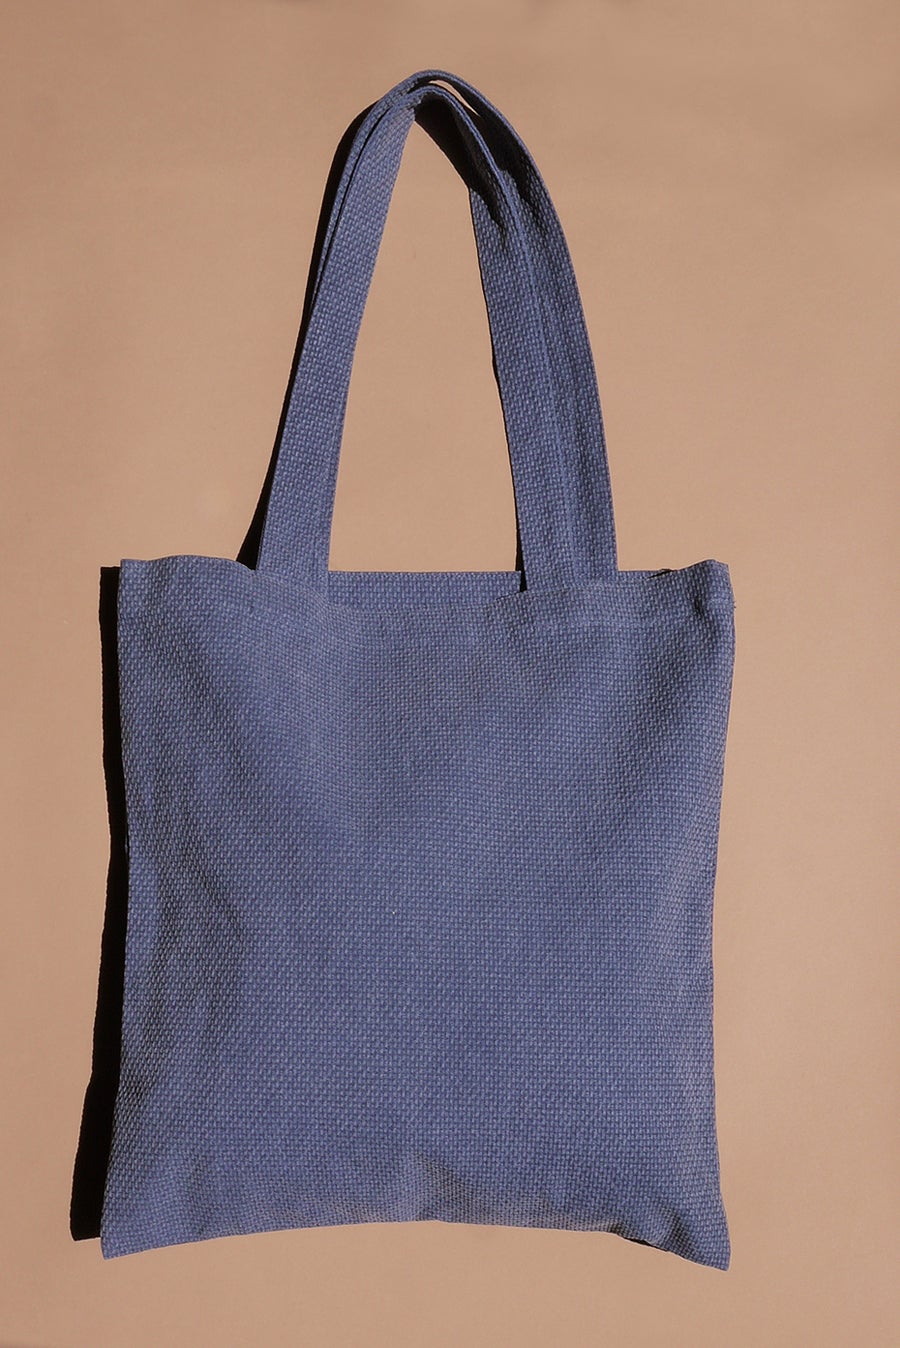 Image of Carry All Tote Bag - Dusty Blue